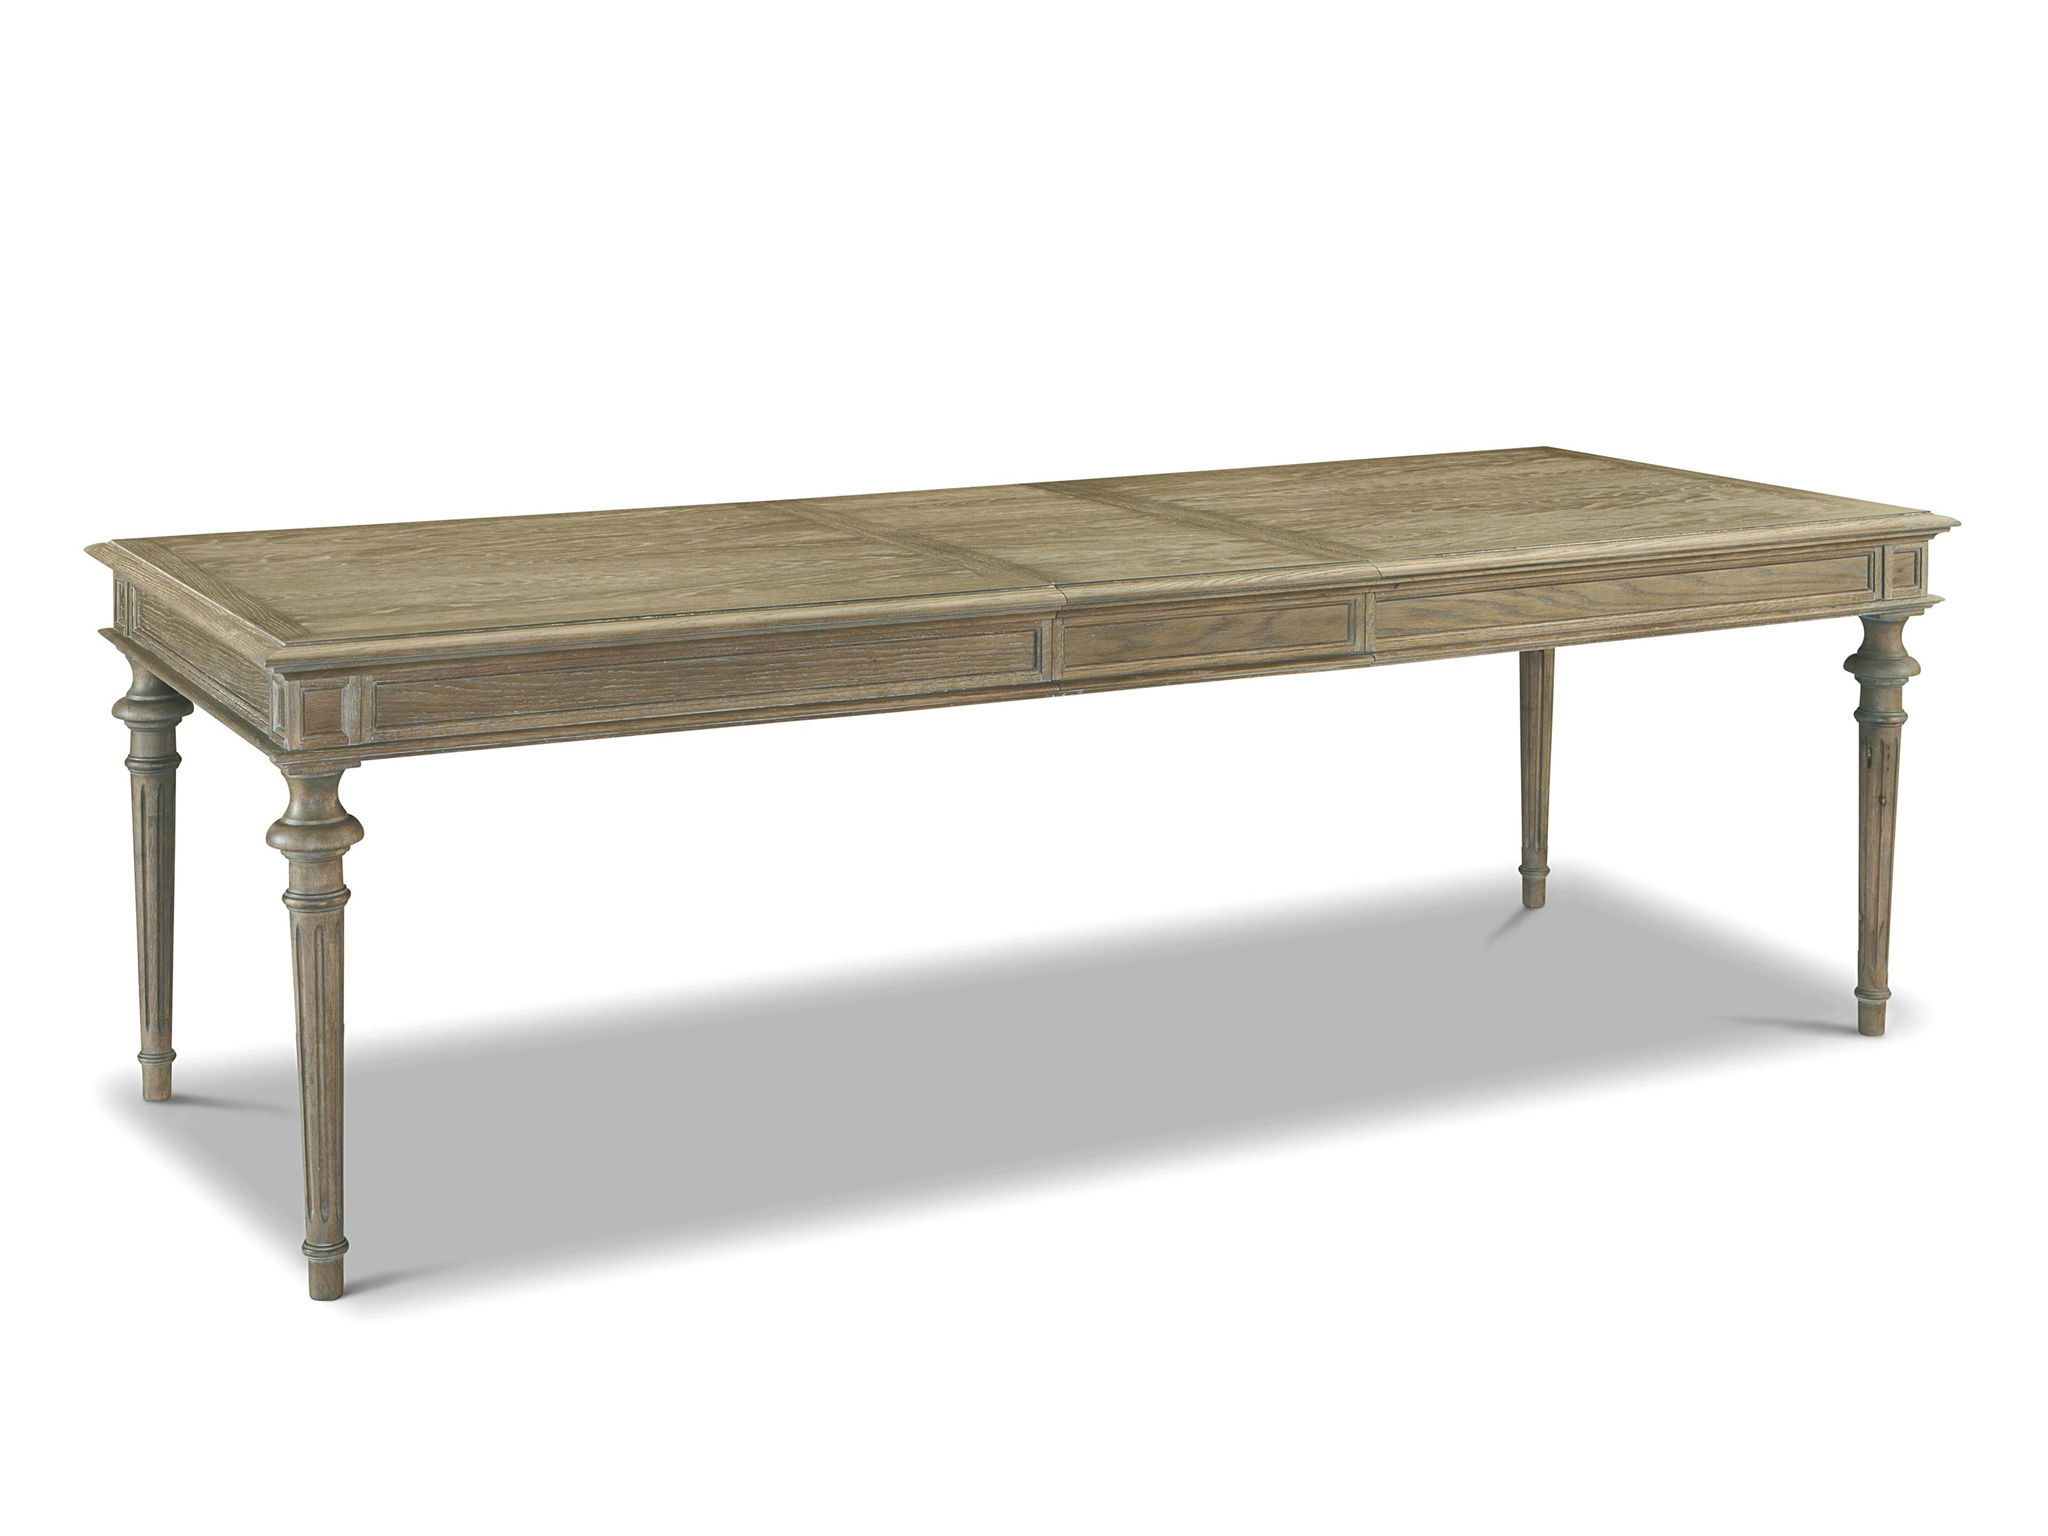 Wood Kitchen Dining Tables With Removable Center Leaf Within Newest Universal – Curated (View 11 of 30)